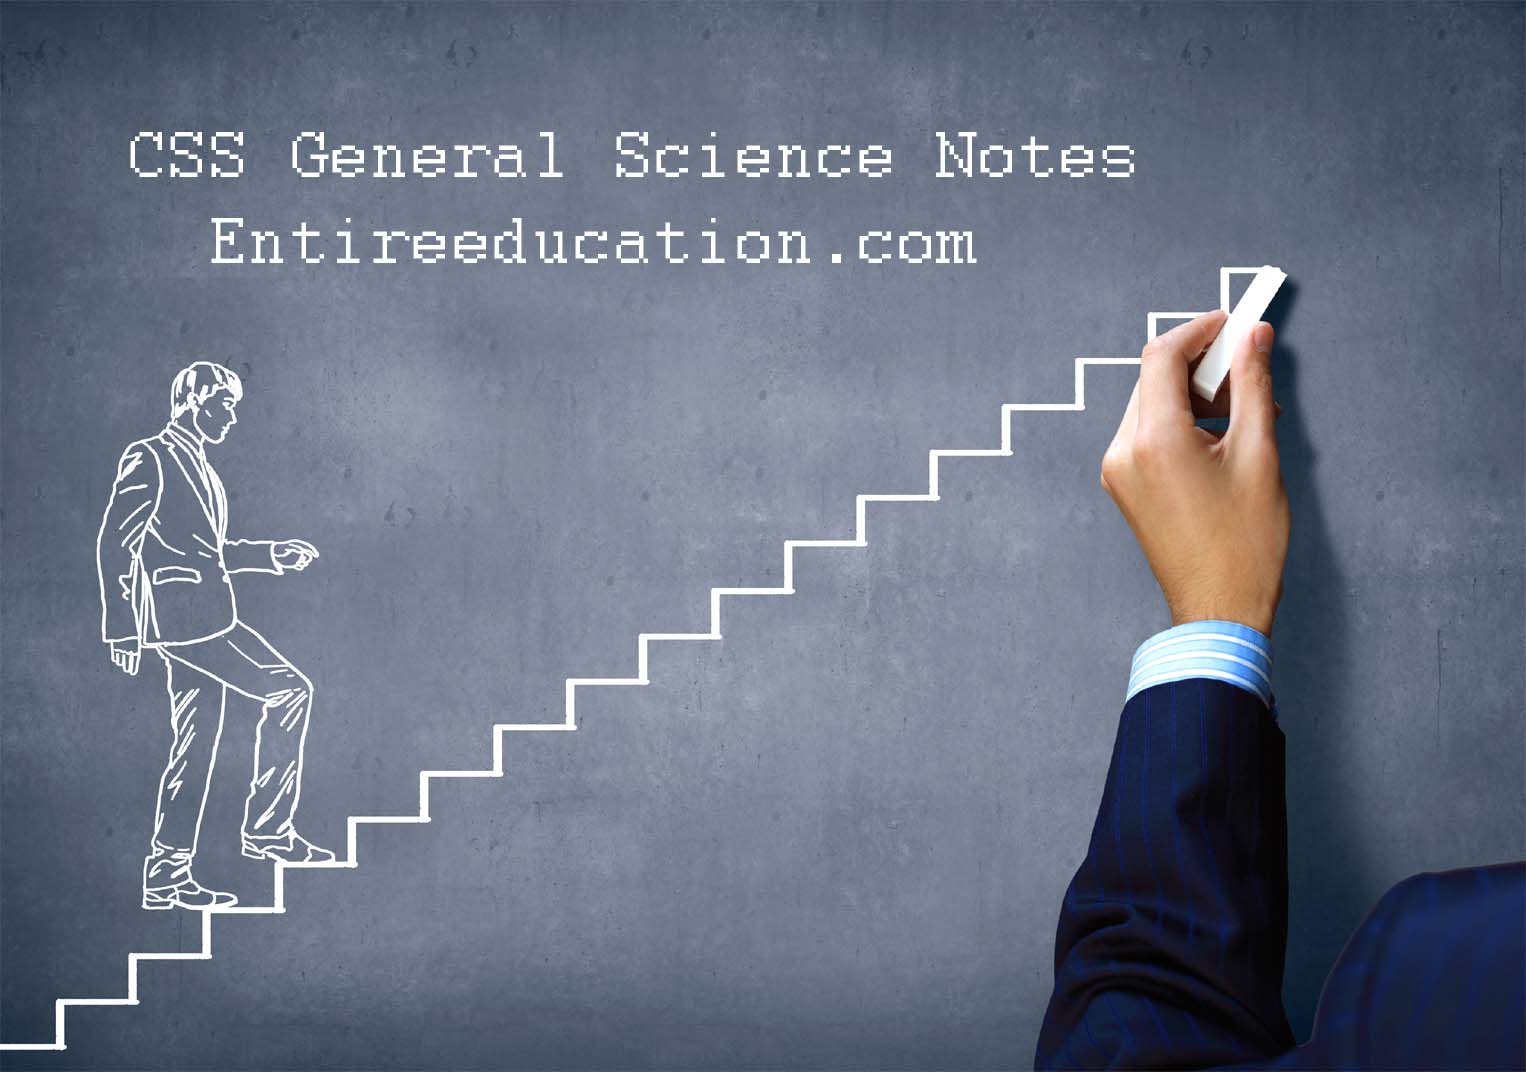 How to Get CSS General Science Notes for Preparation